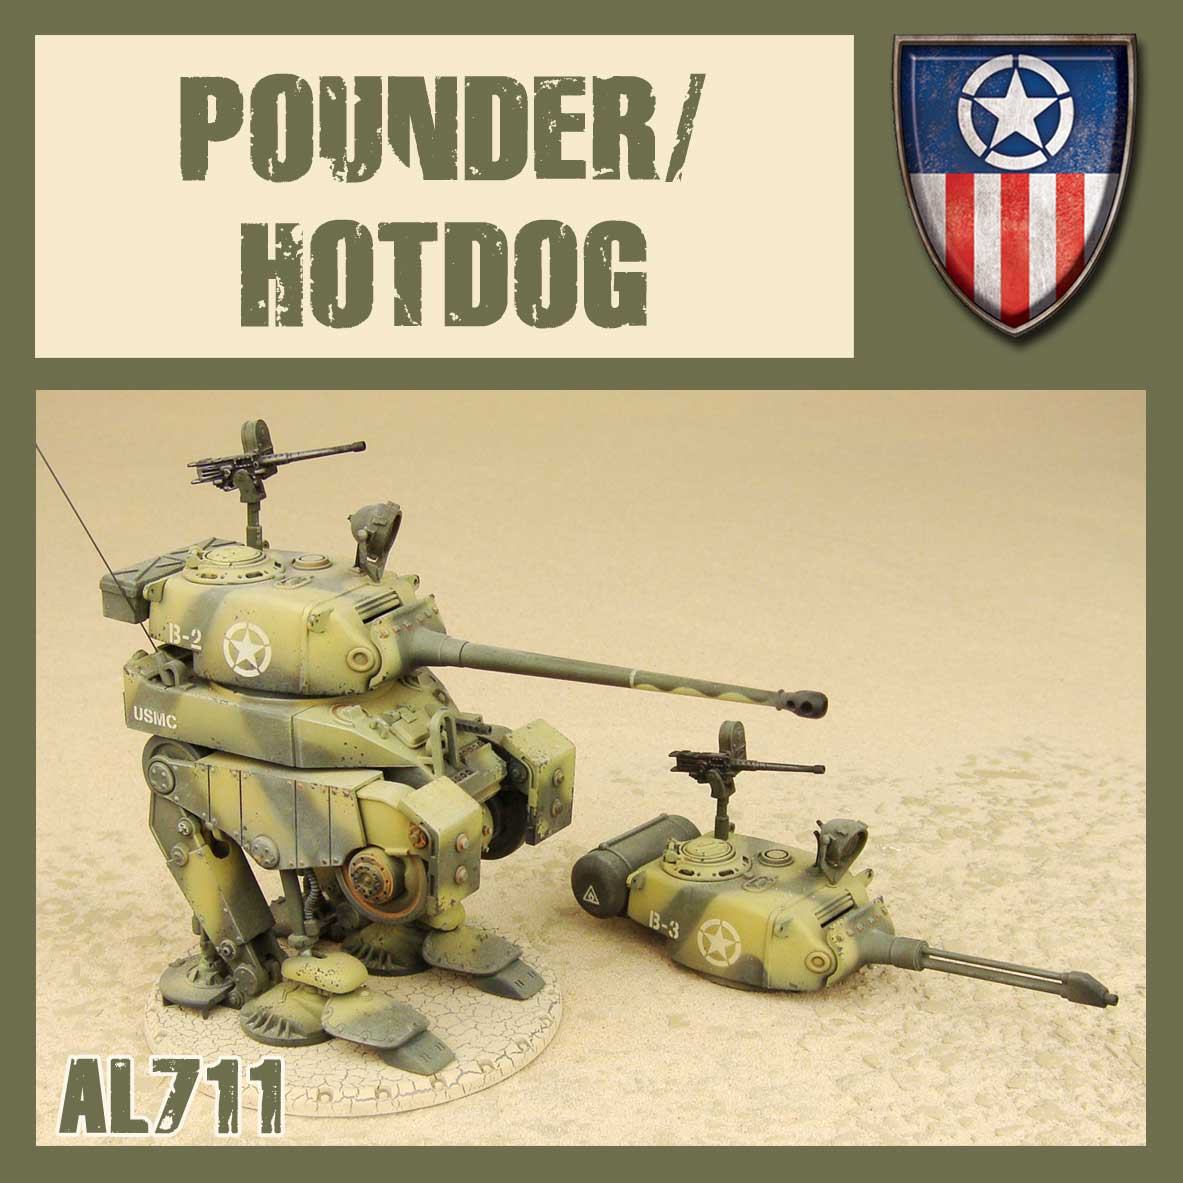 Pounder/Hot Dog